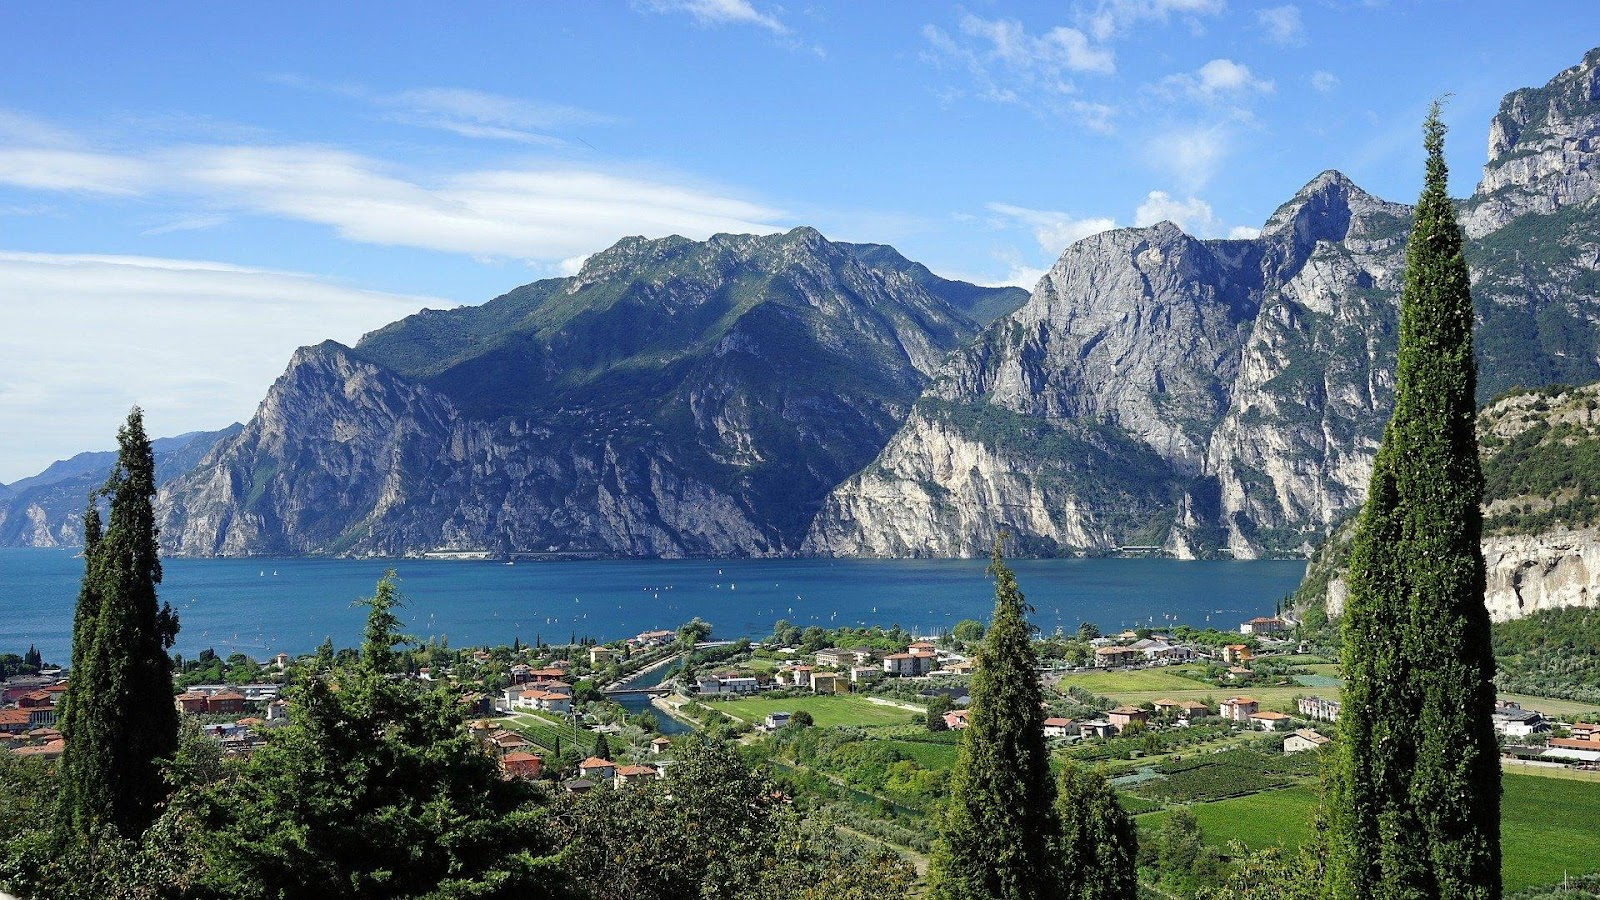 lago di garda crystal clear blue lake in italy surrounded by cliff mountains and green fields